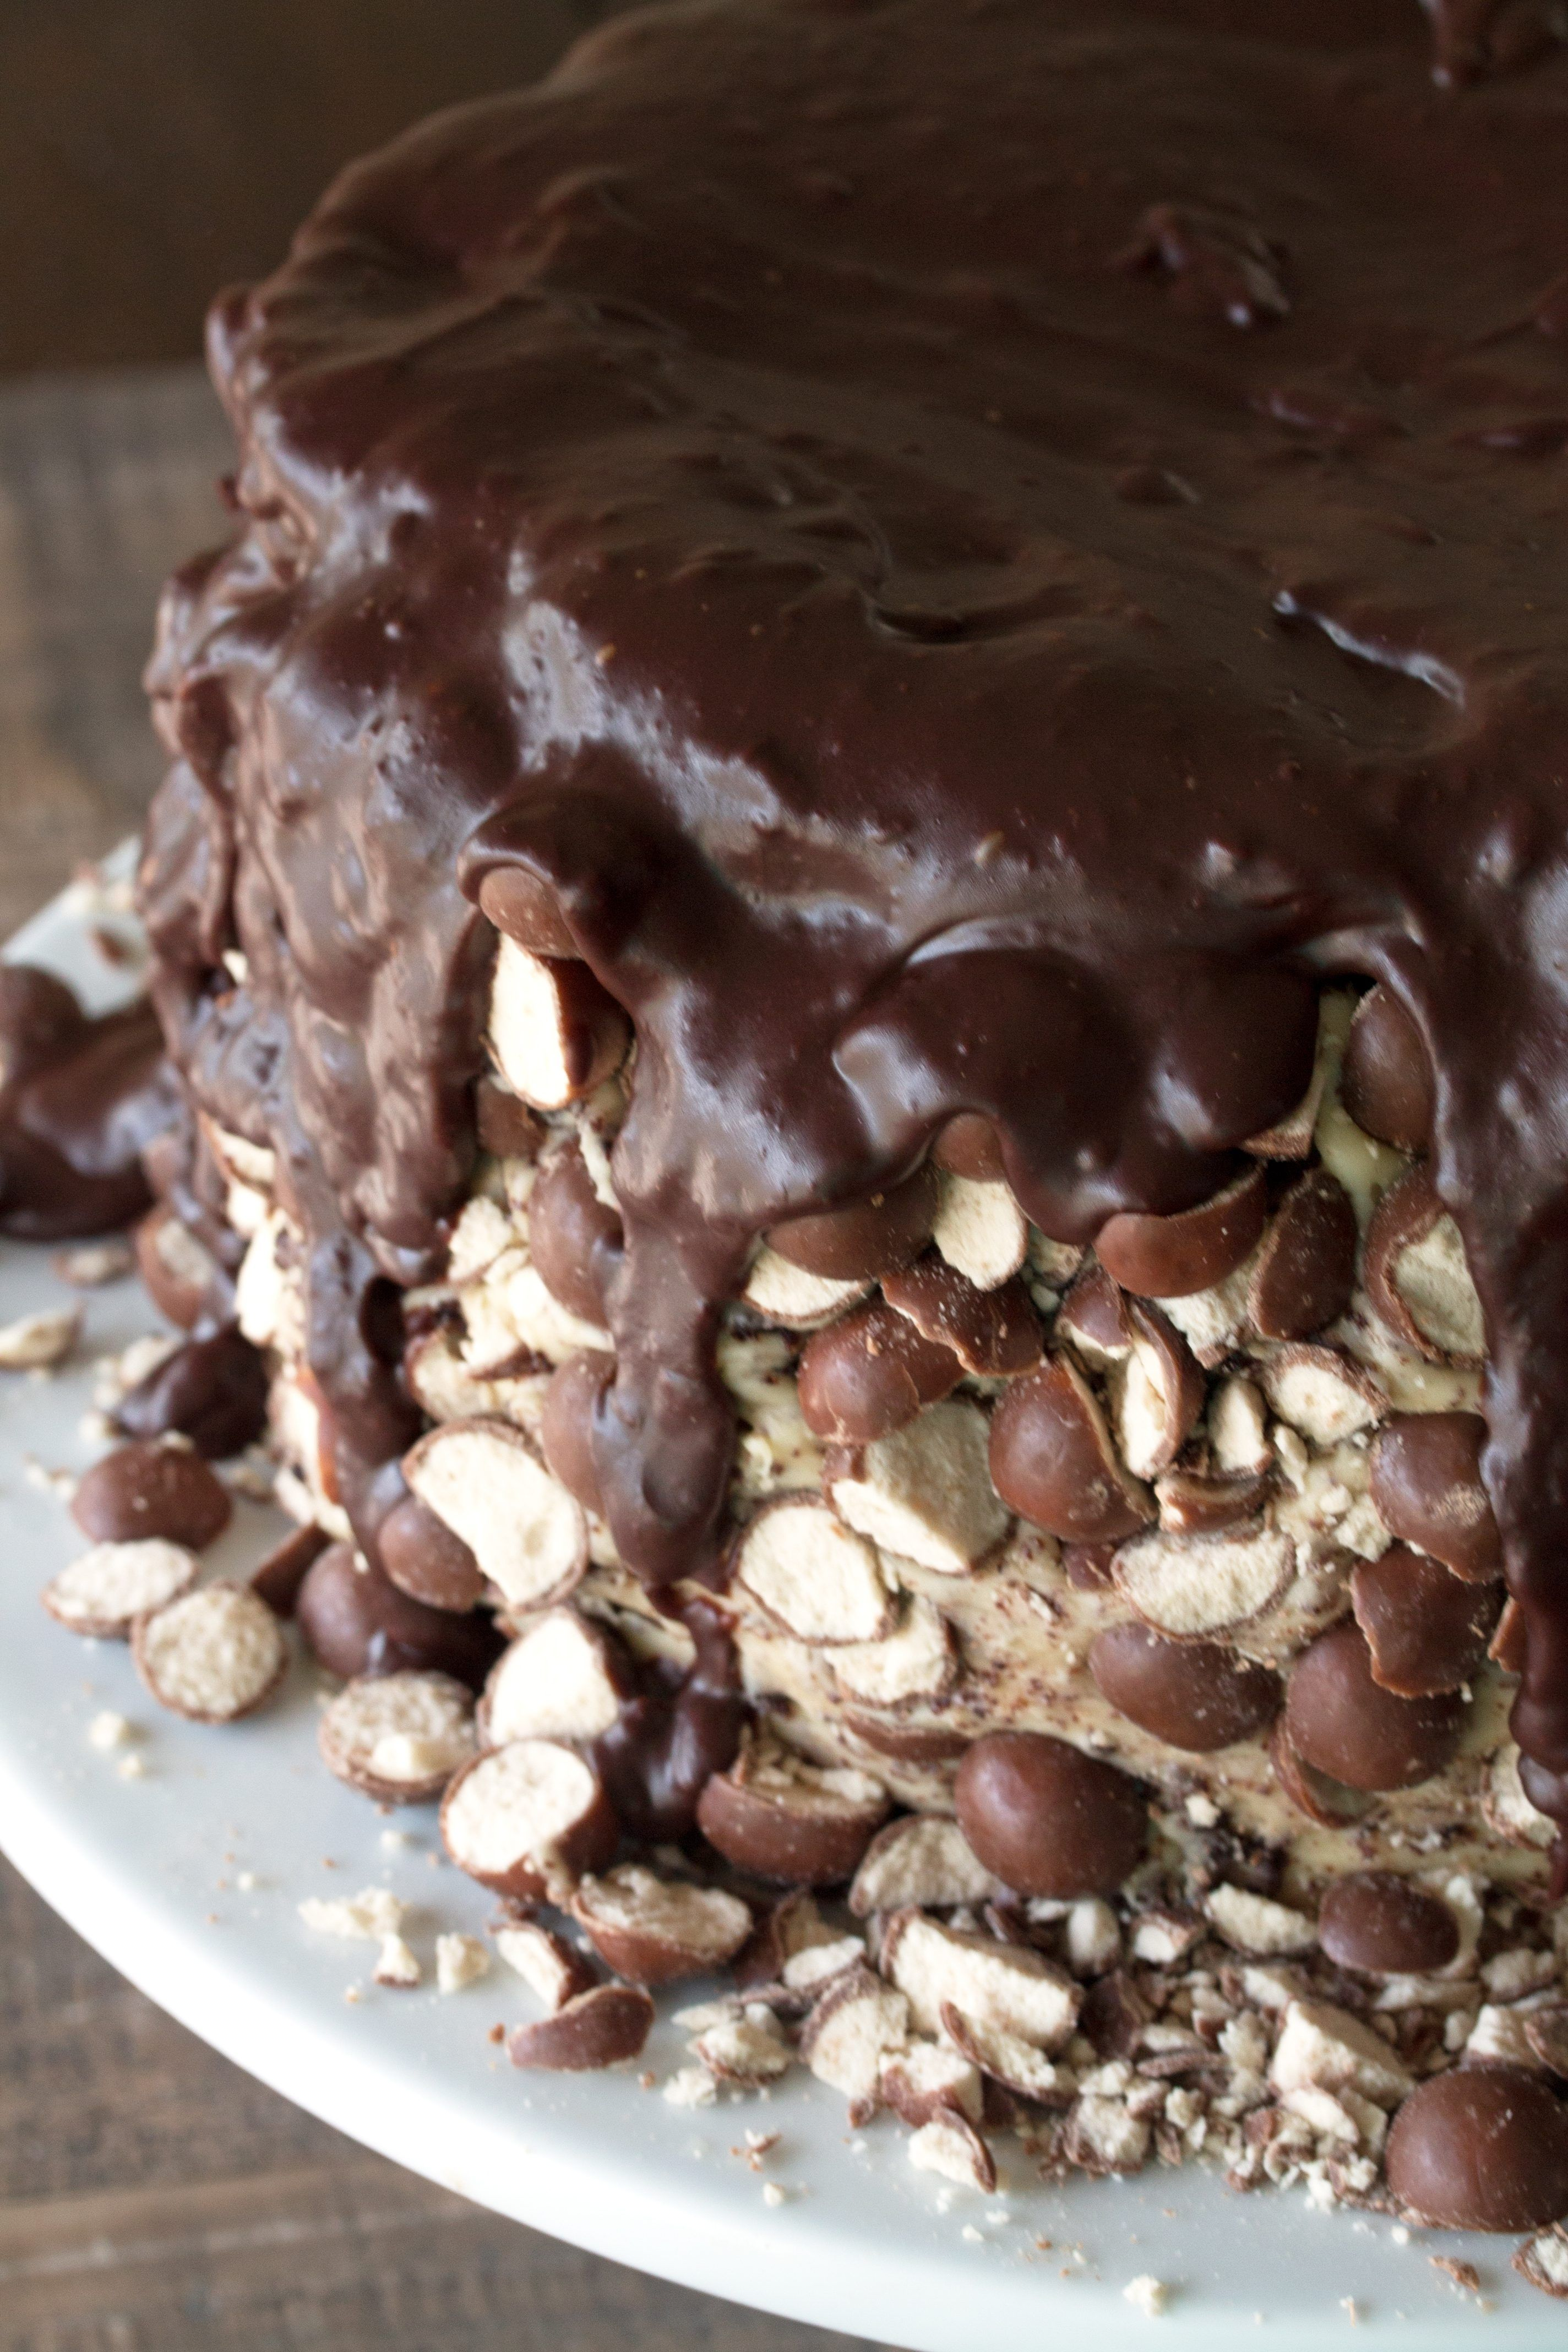 A moist and delicious triple chocolate malt cake with 3 layers of